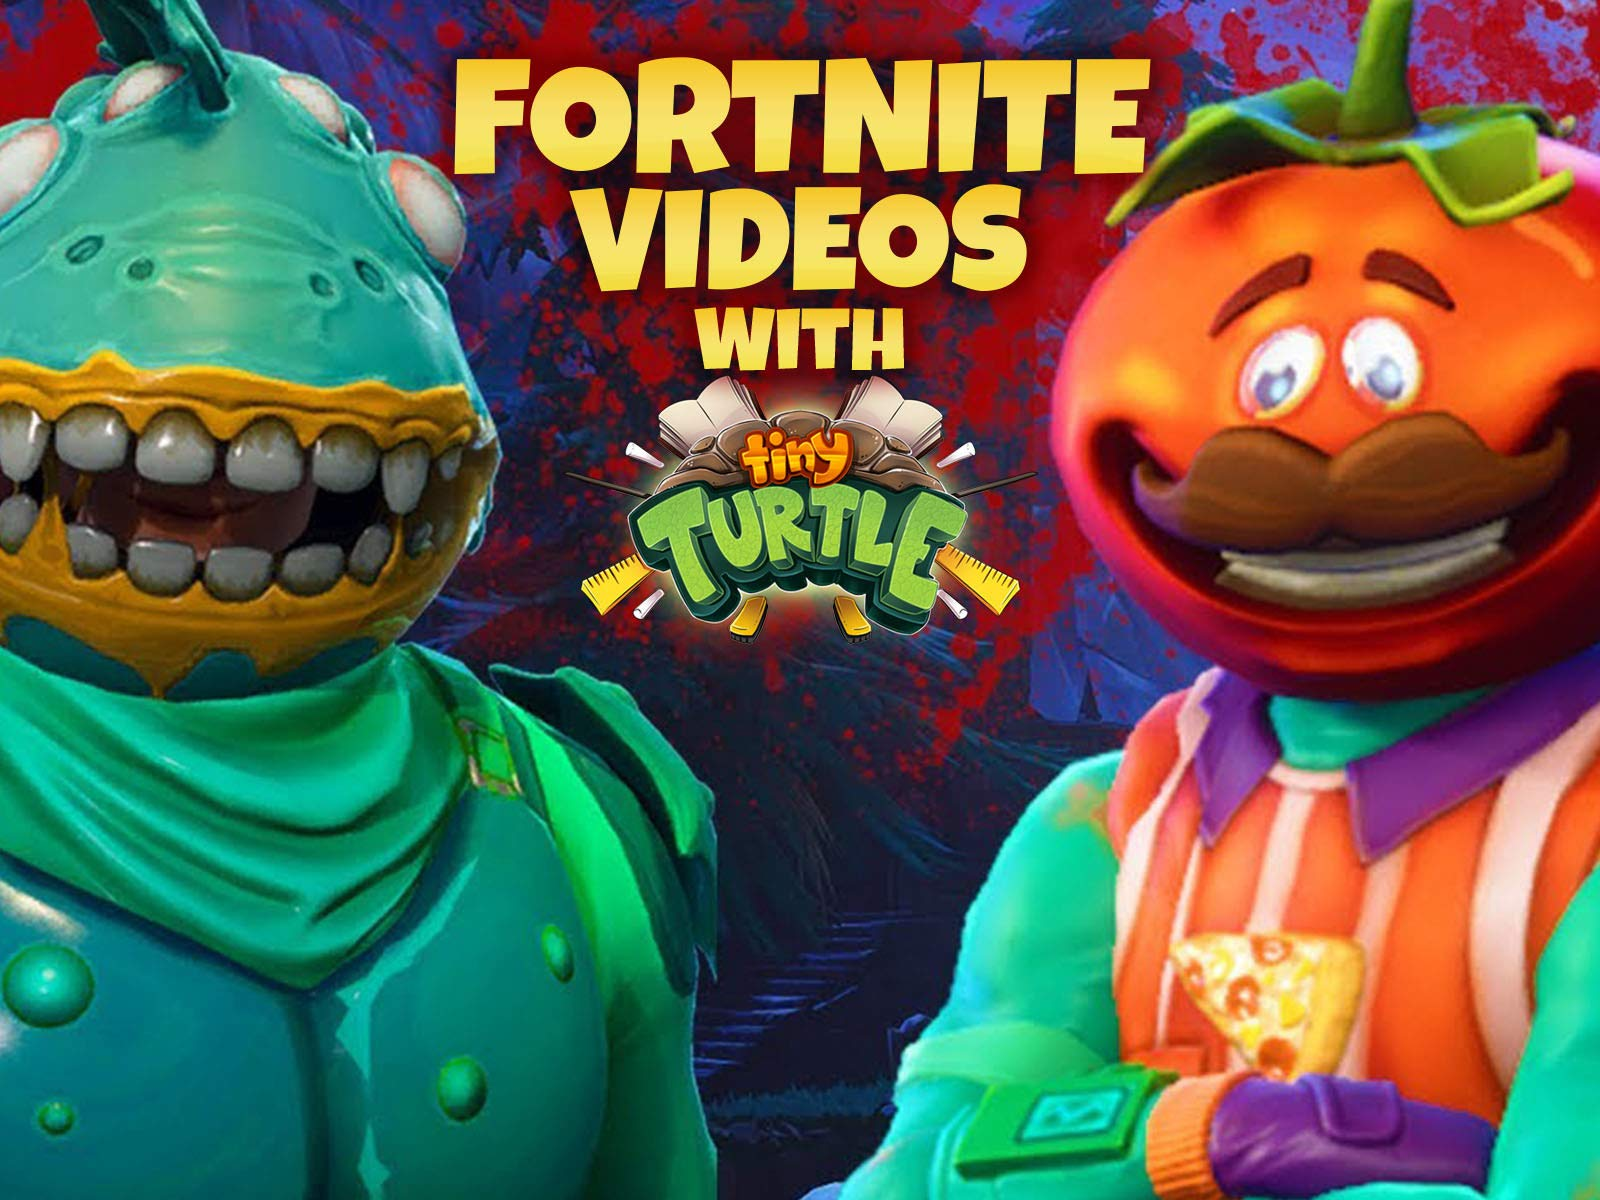 Amazon Co Uk Watch Clip Fortnite Videos With Tiny Turtle Prime Video